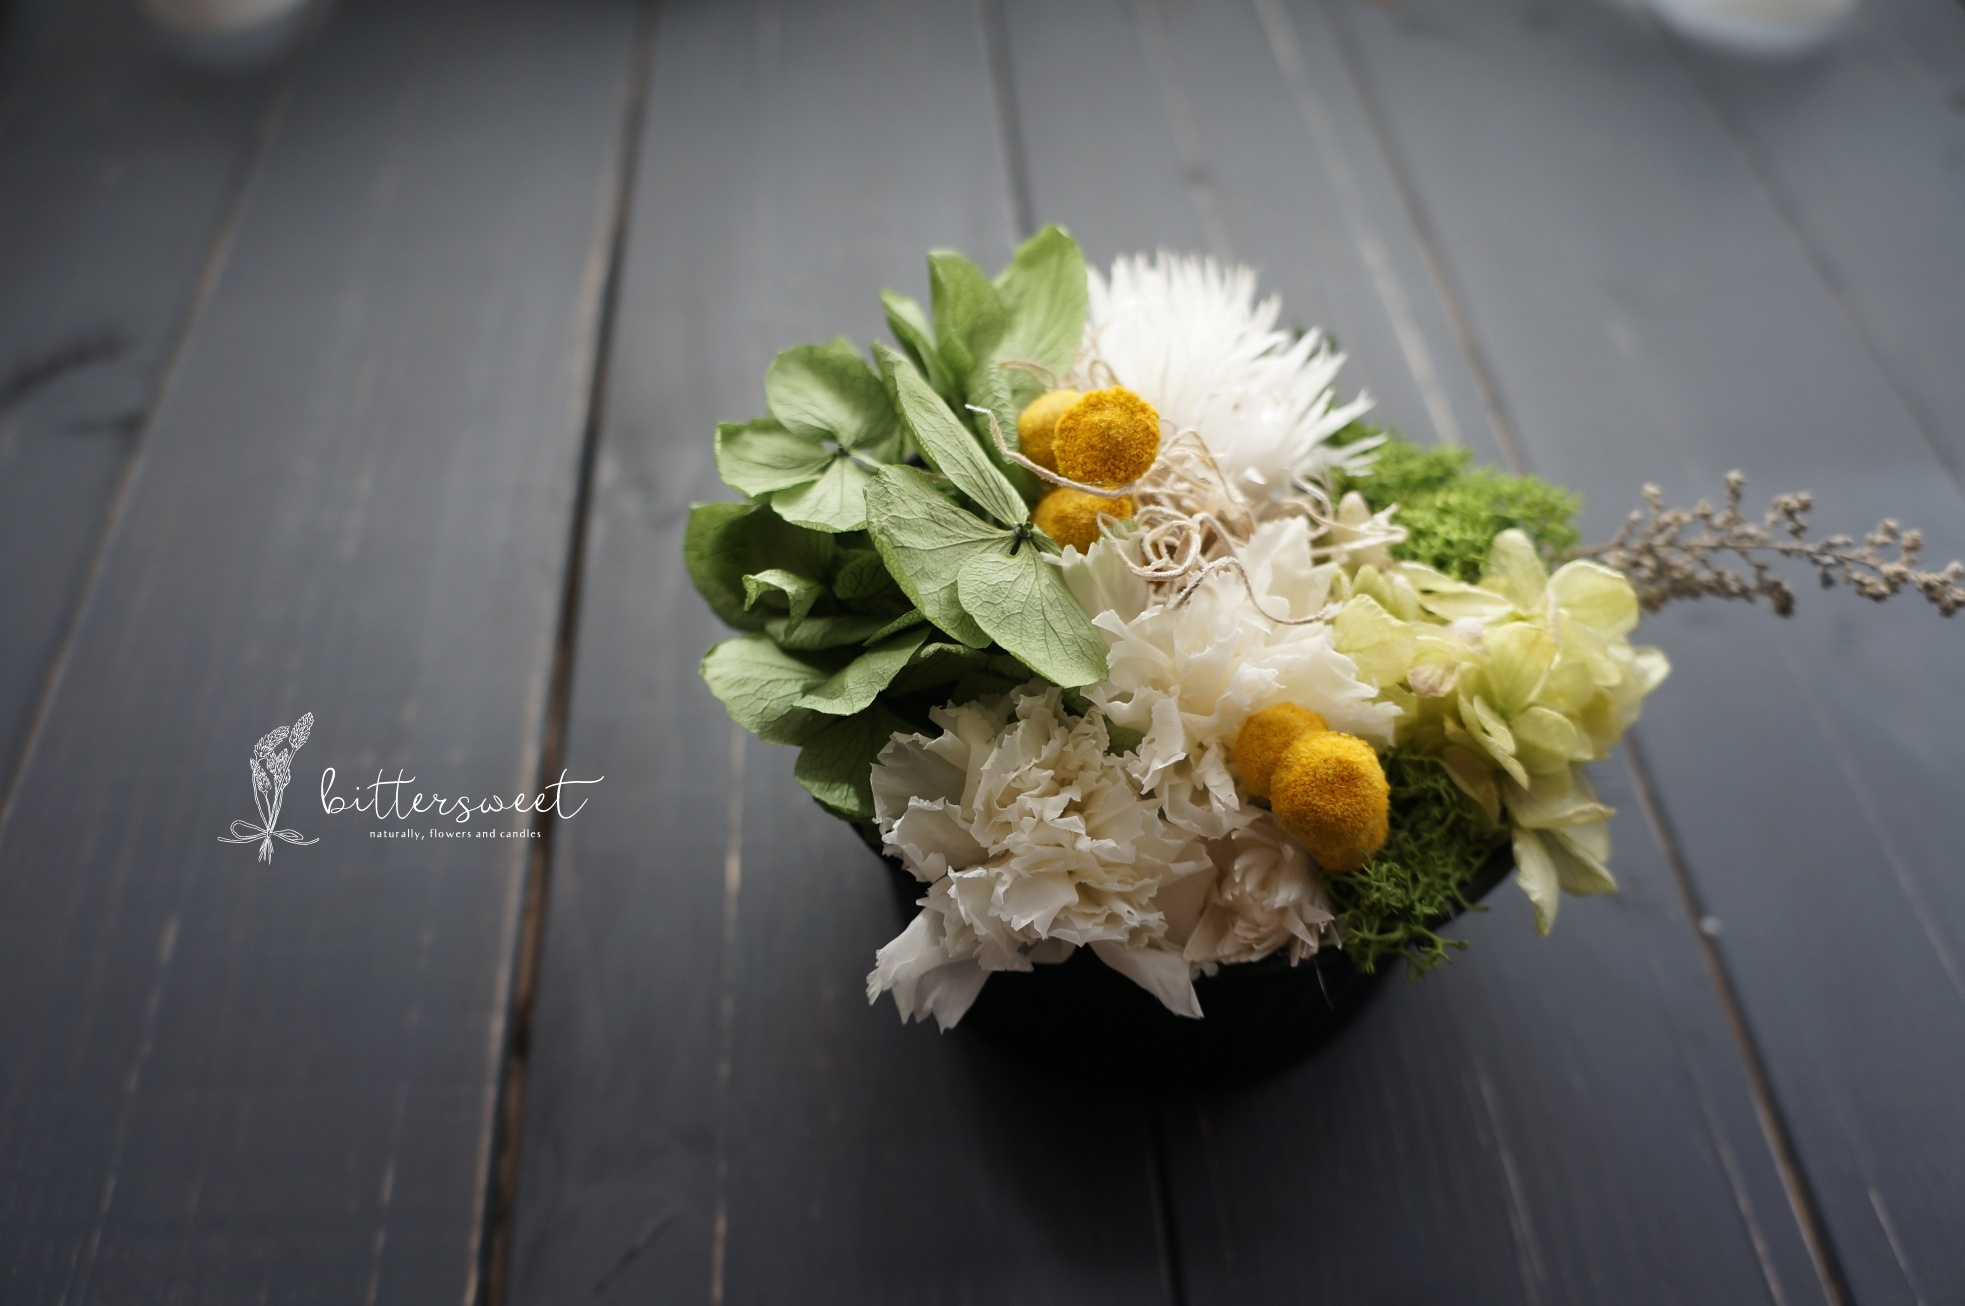 Arrangement  no.013